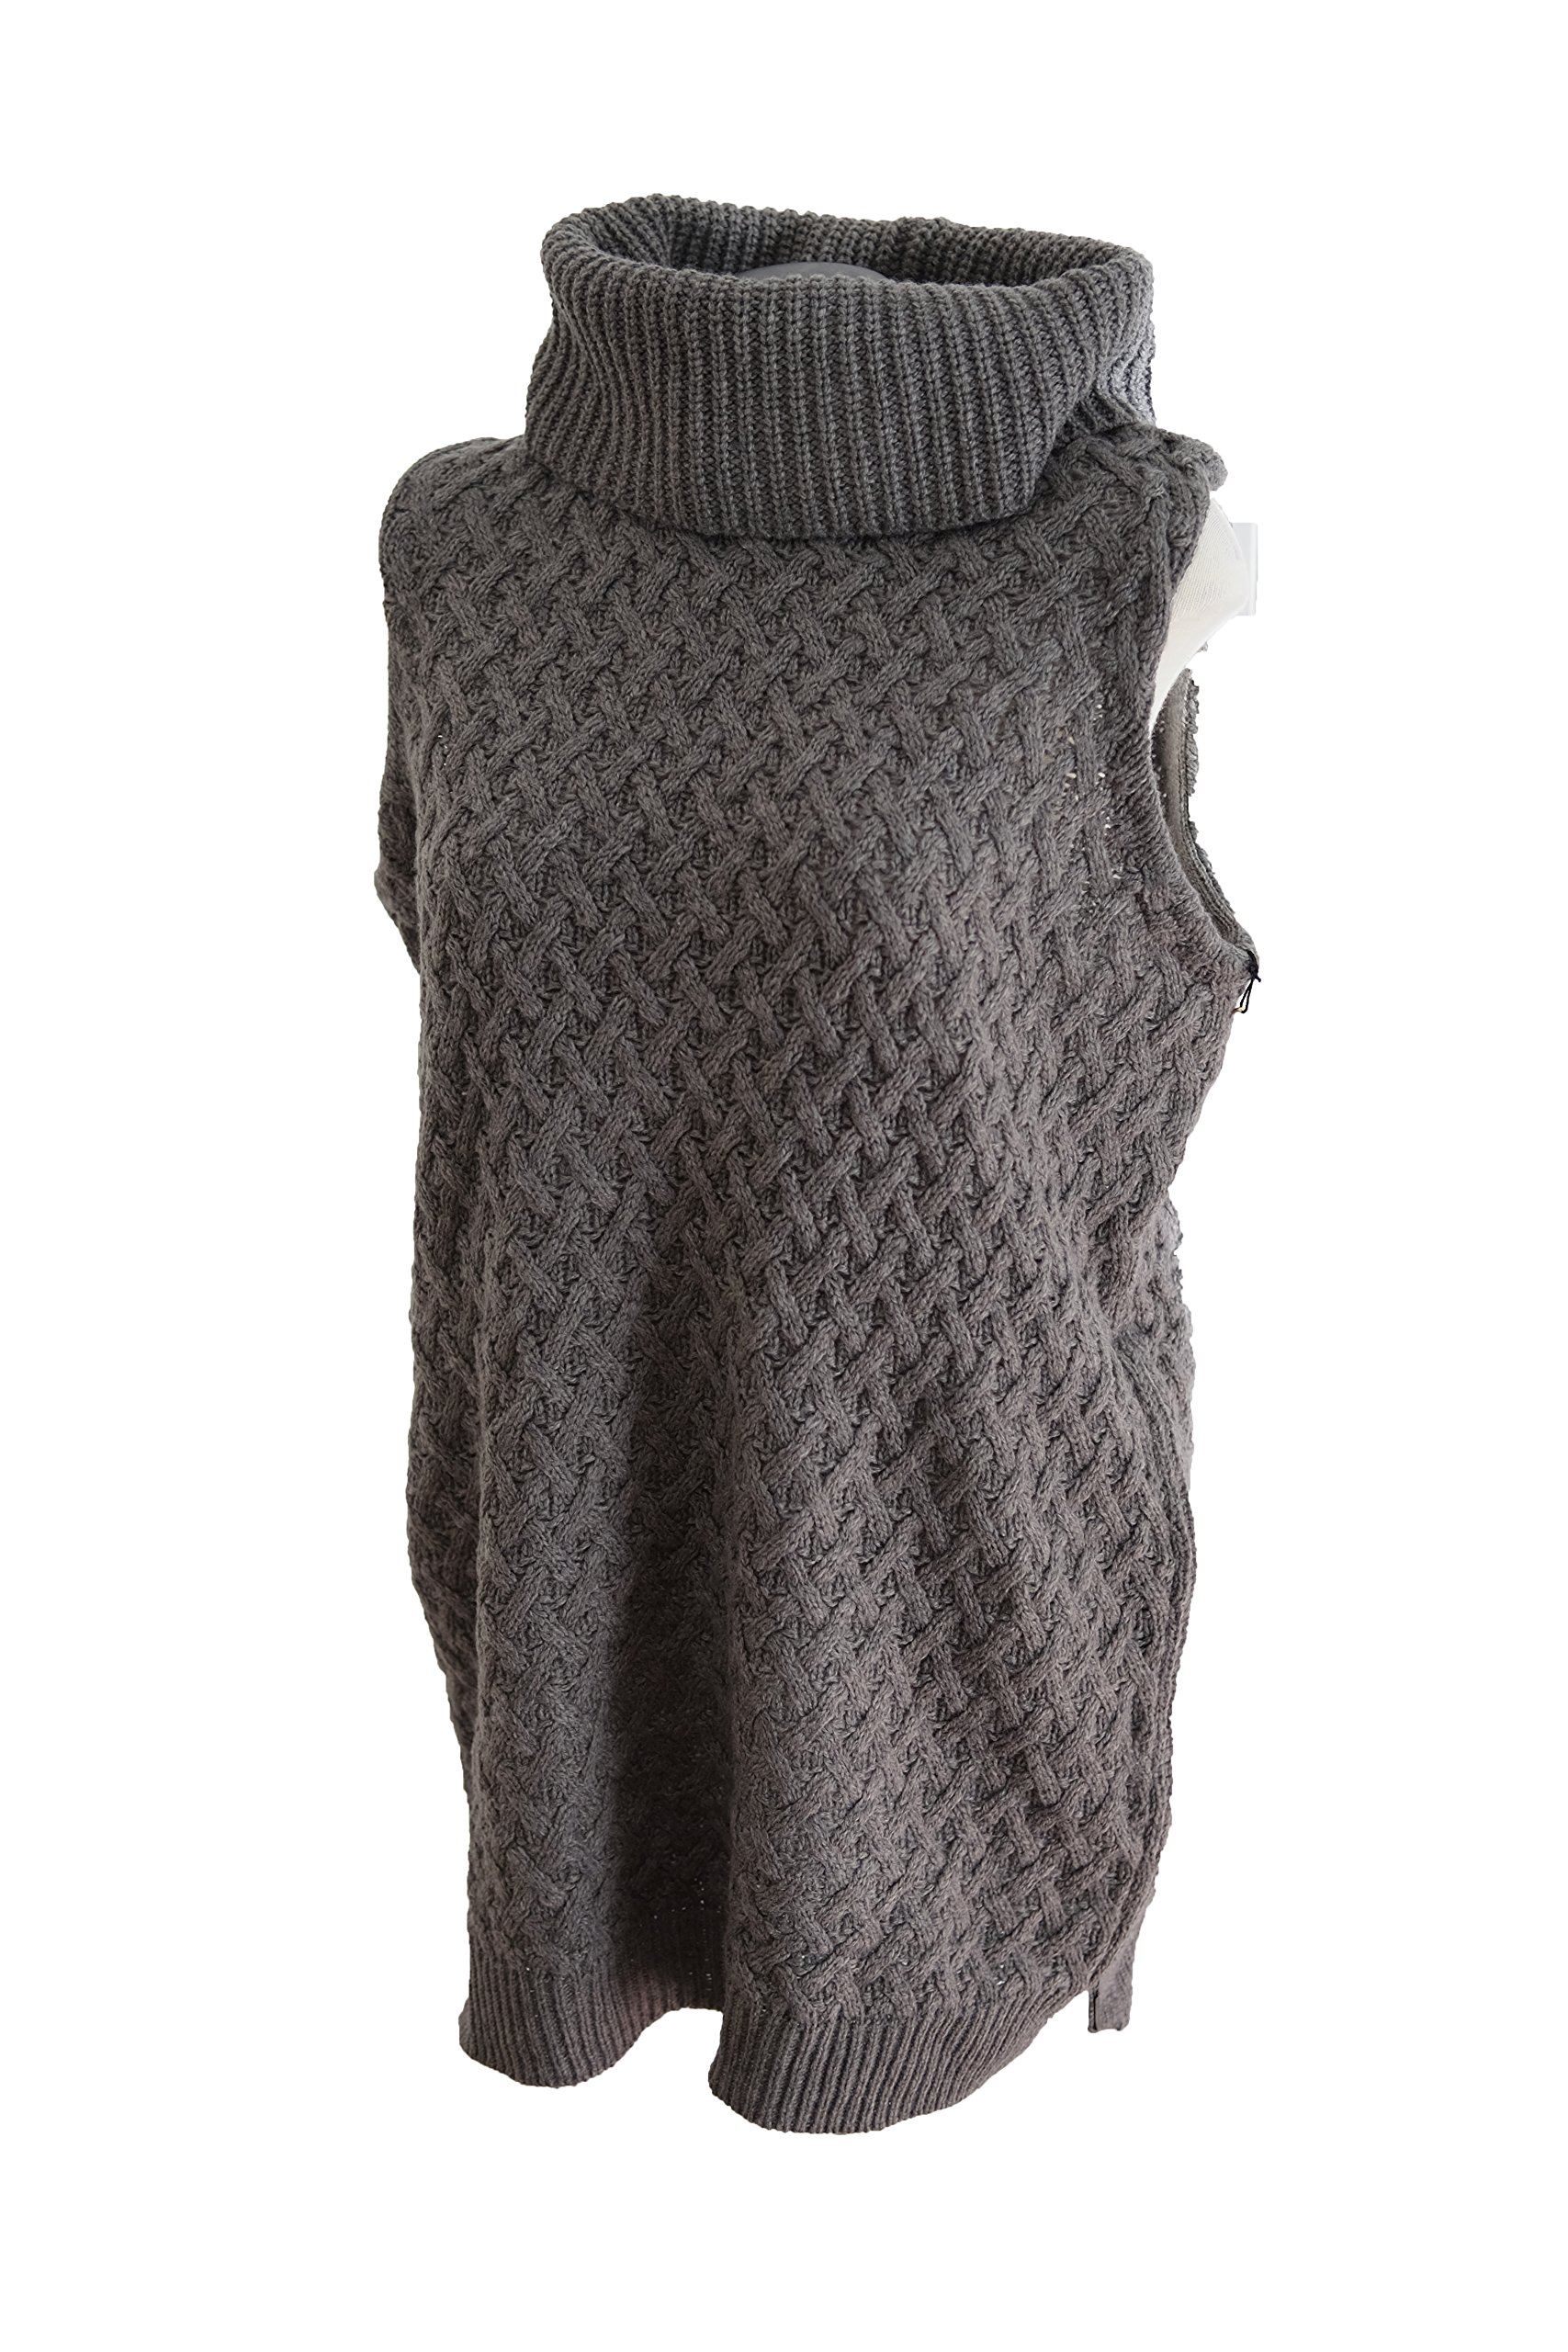 Adrienne Vittadini Turtleneck Vest Sweater Large